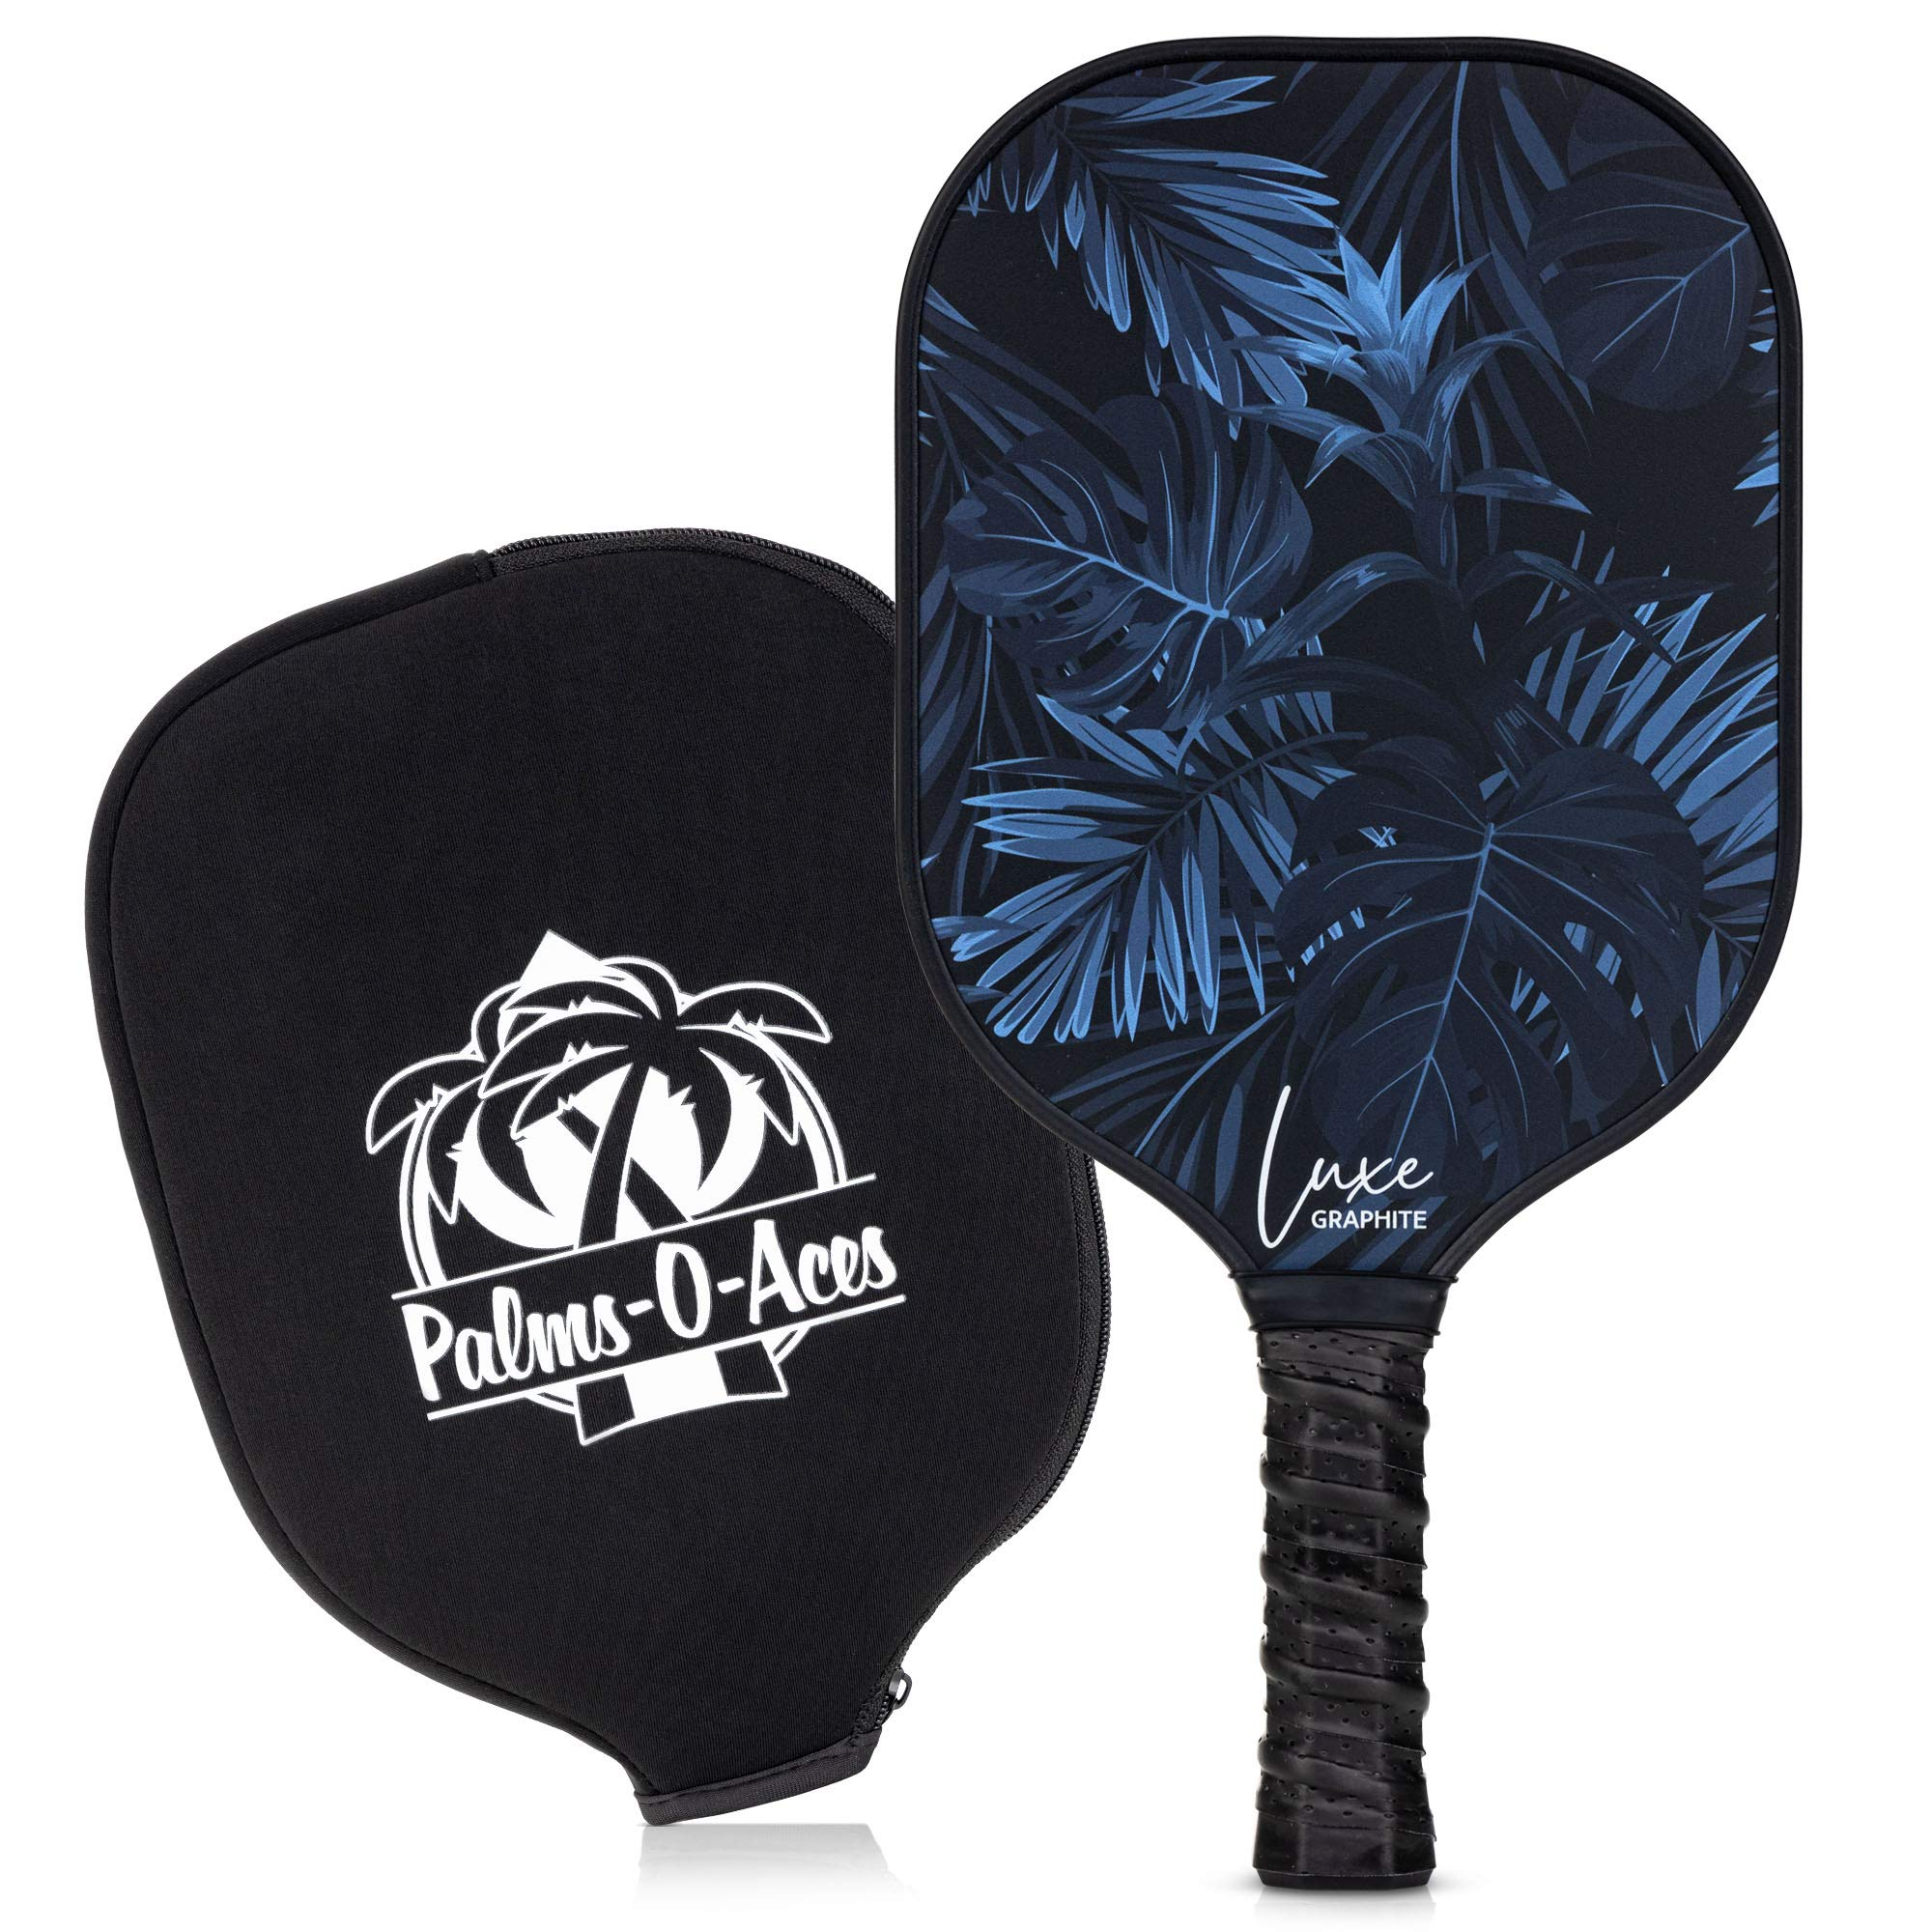 Palms-O-Aces Graphite Pickleball Paddle with Cover - T -WQ75